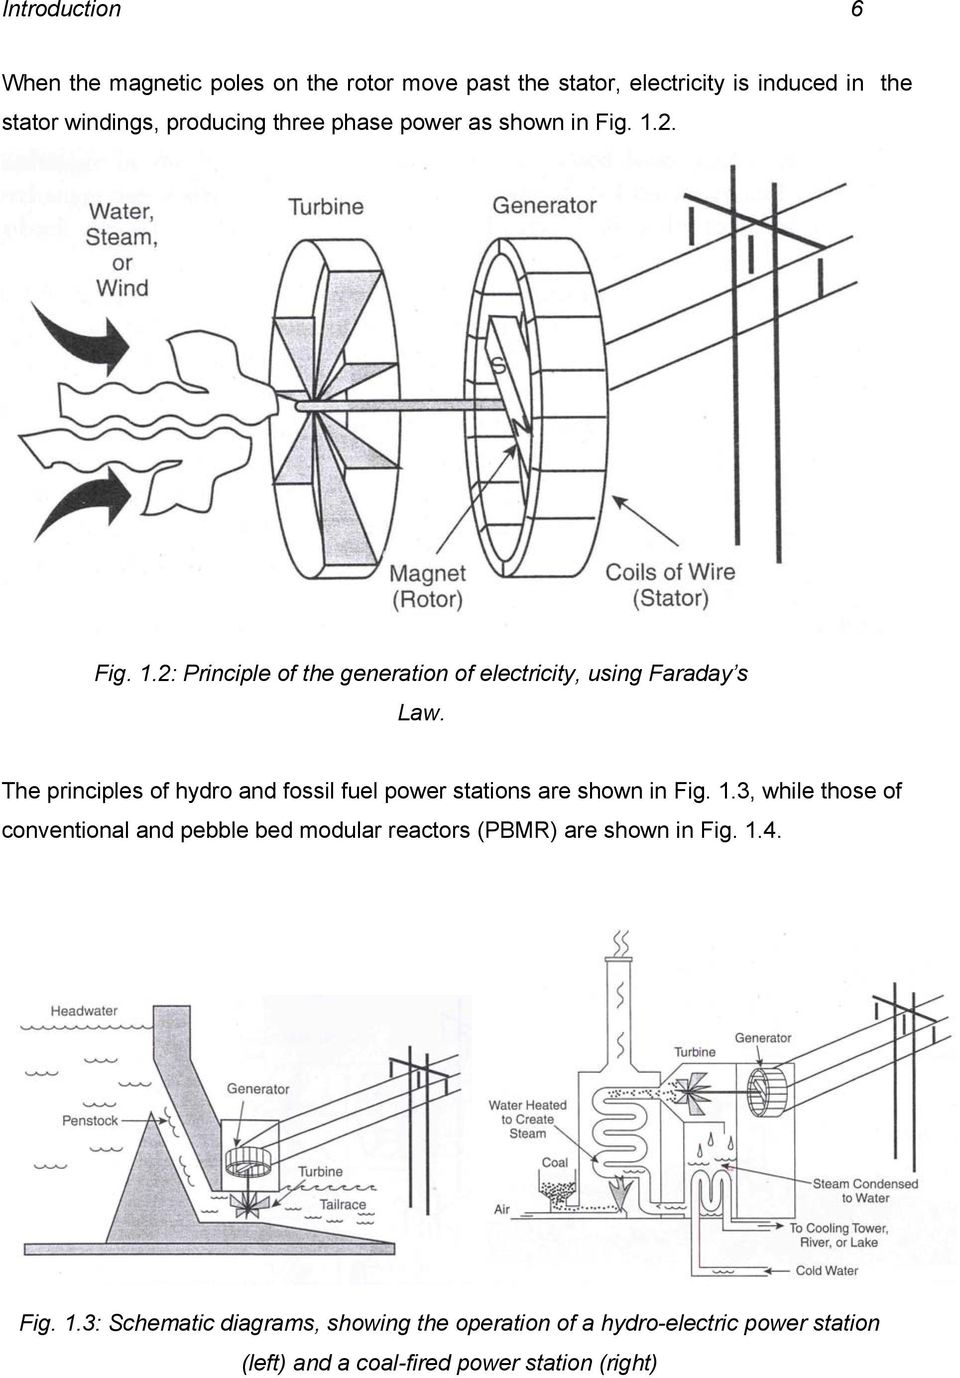 High Voltage Engineering Practice And Theory Dr Jp Holtzhausen Hydroelectric Power Plant Schematic Diagram The Principles Of Hydro Fossil Fuel Stations Are Shown In Fig 1